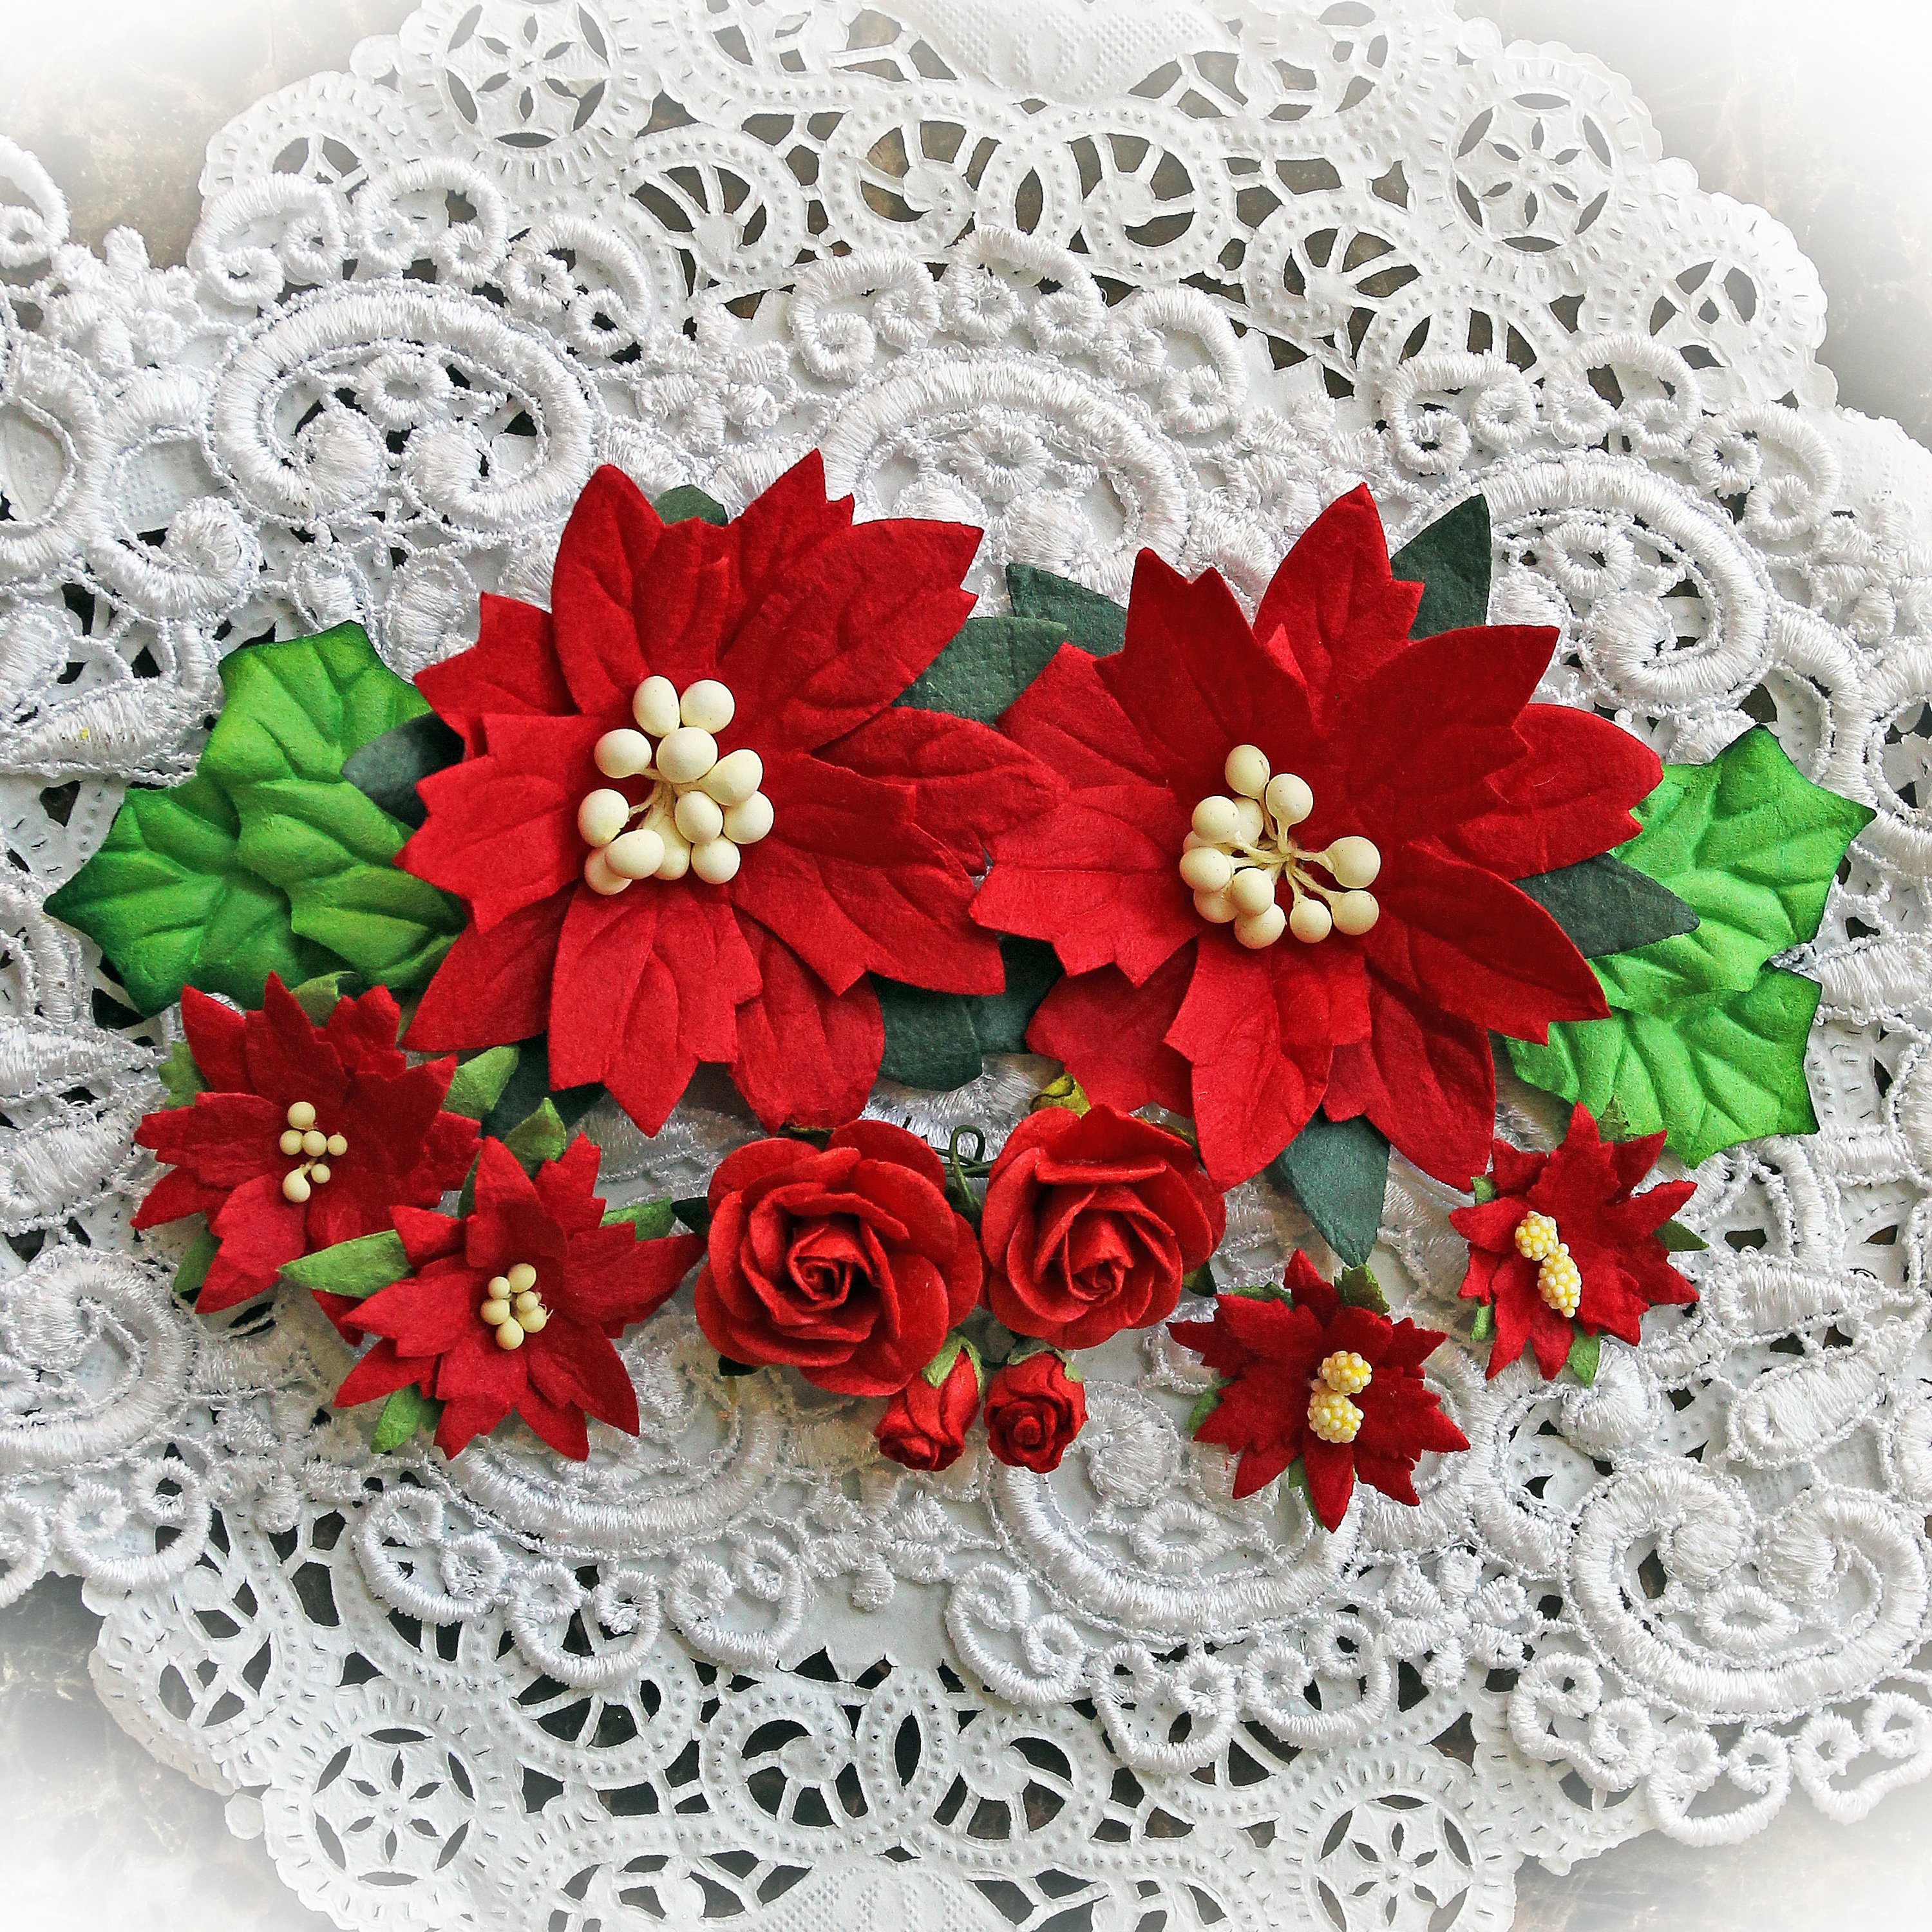 Christmas Red Mulberry Paper Poinsettias Roses Holly Leaves